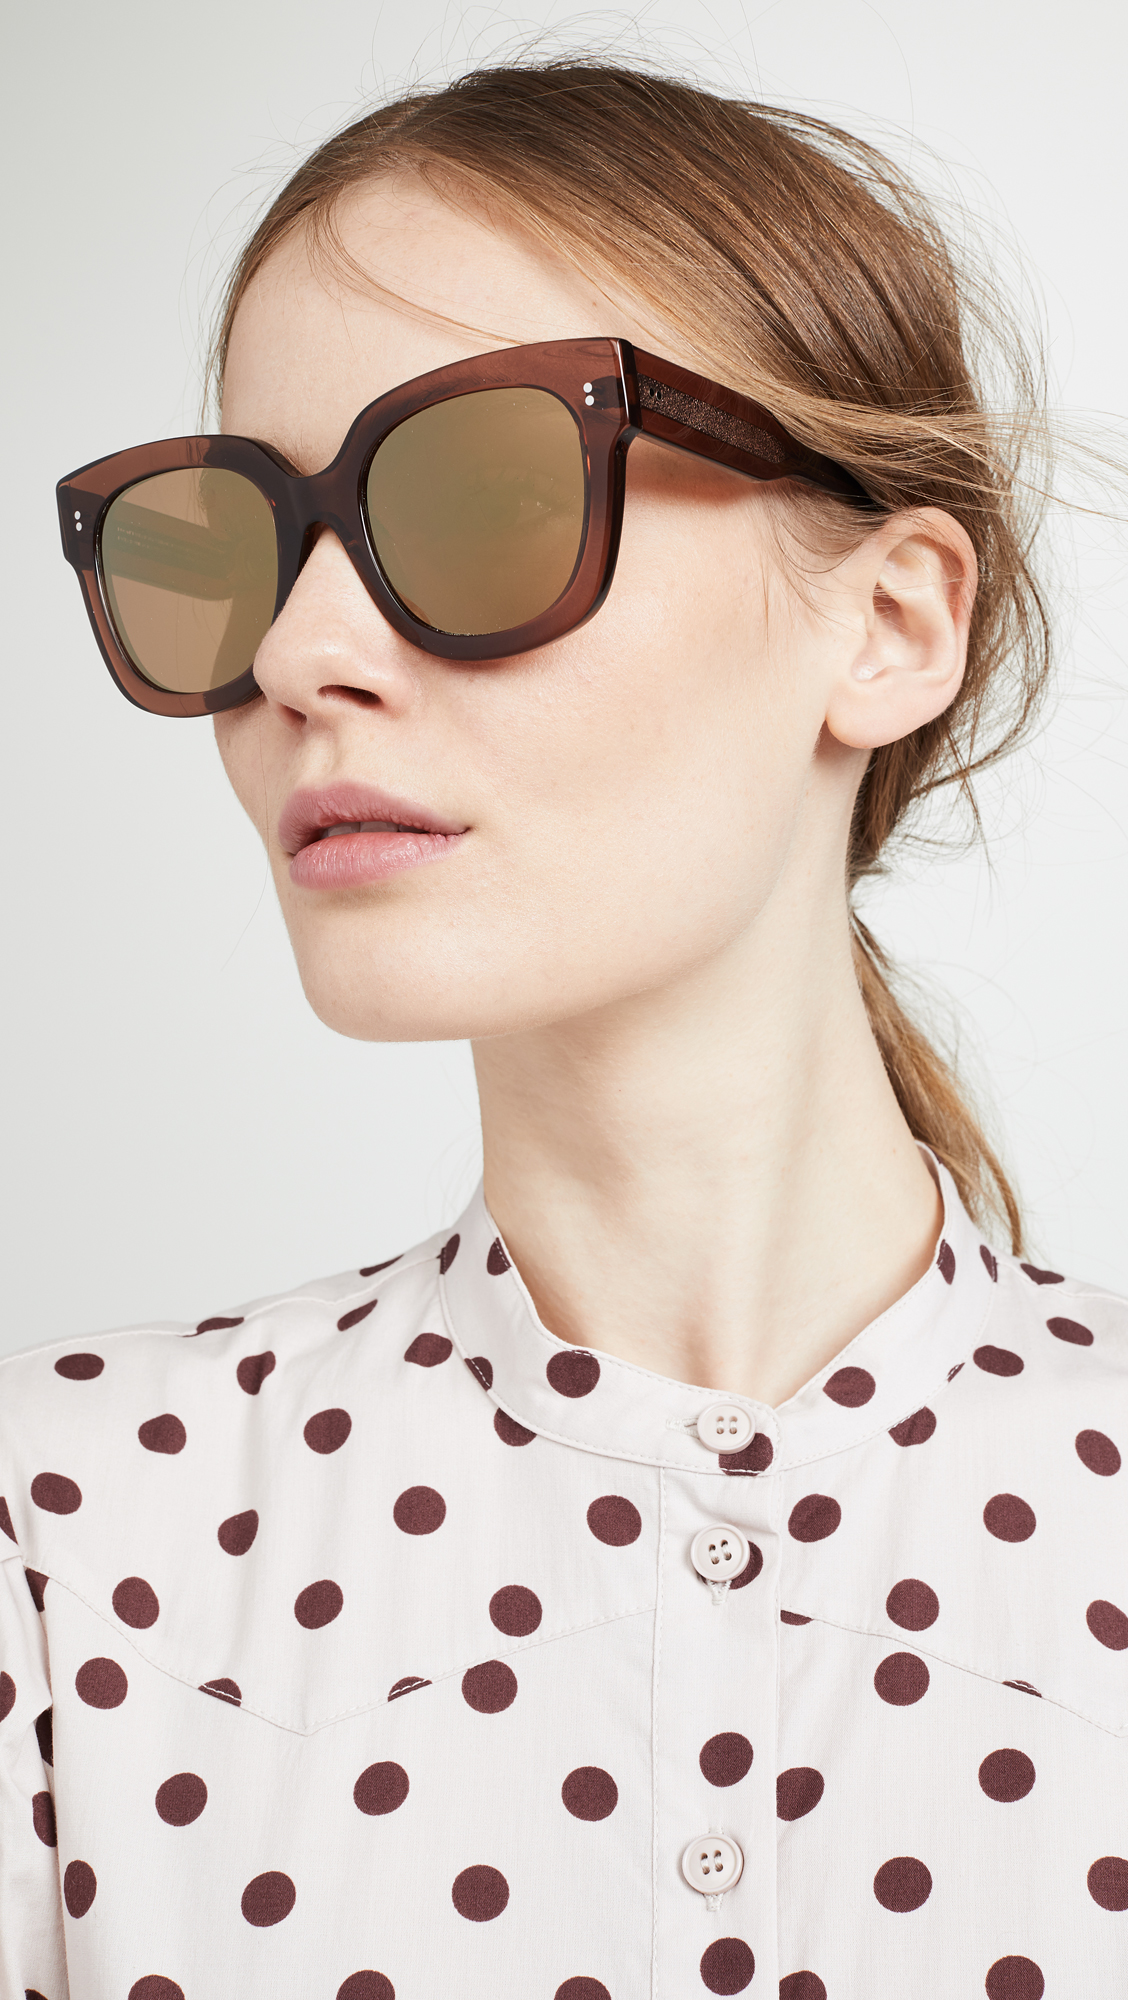 Lifestyle blogger Lexi of Glitter, Inc. shares her favorite weekly finds from around the web, including these affordable designer look-a-like Chimi 008 Sunglasses | glitterinc.com | @glitterinc